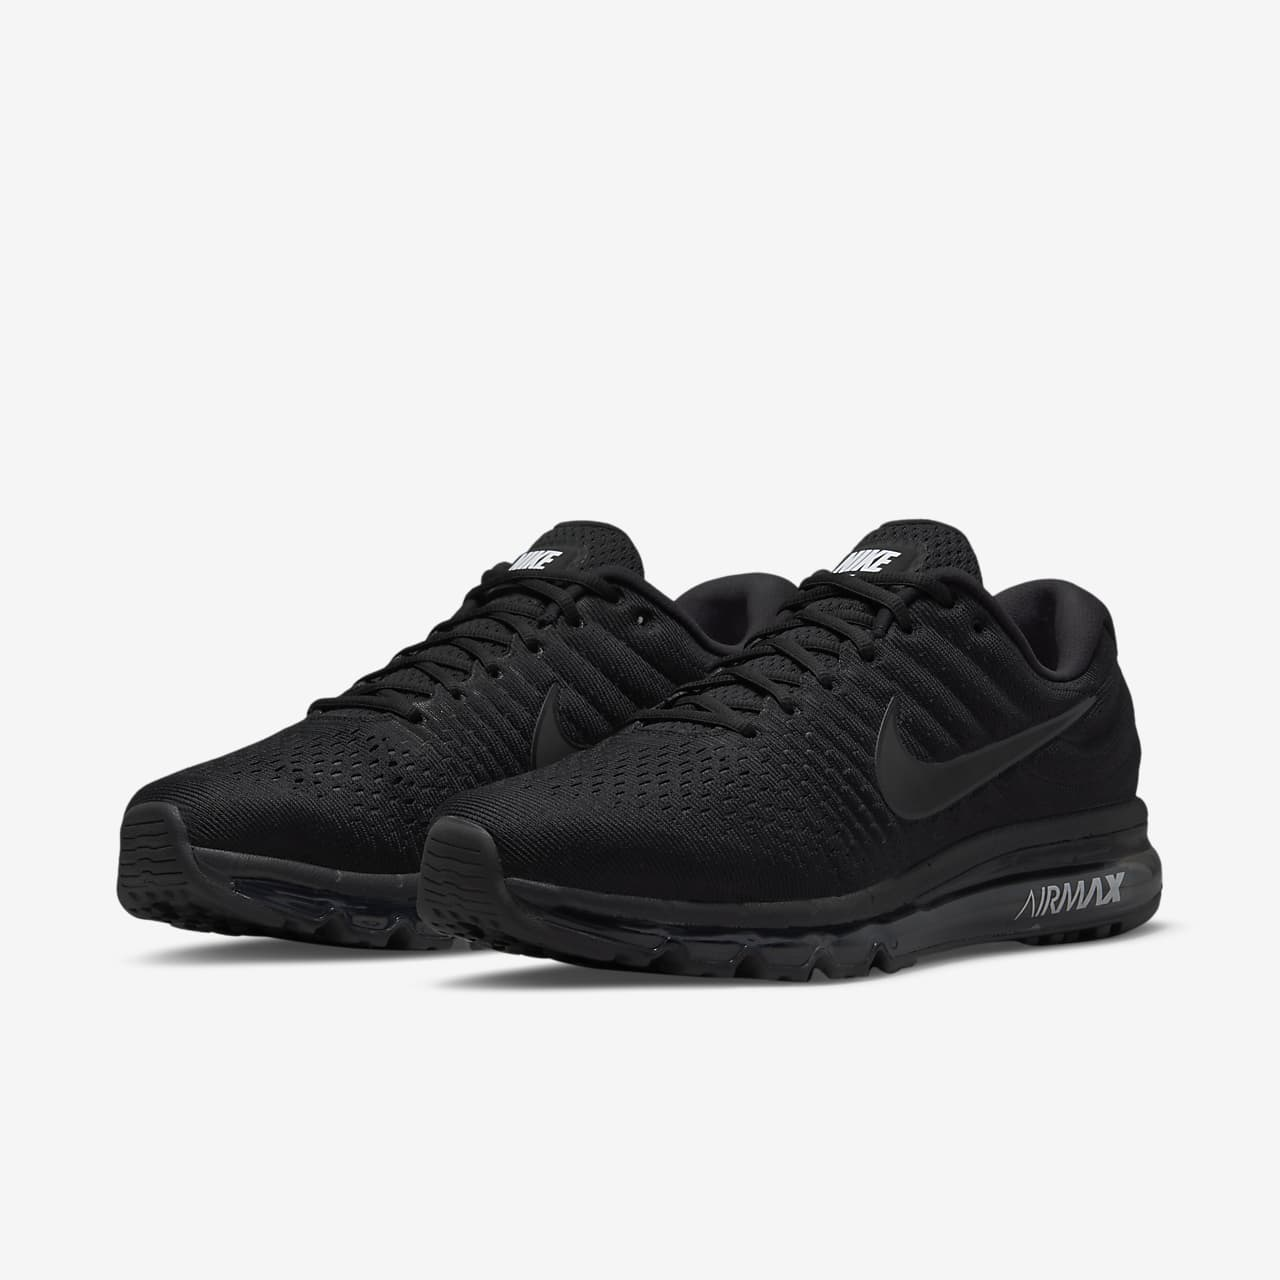 8b8a3faf63908 Nike Air Max 2017 Men s Shoe. Nike.com NZ